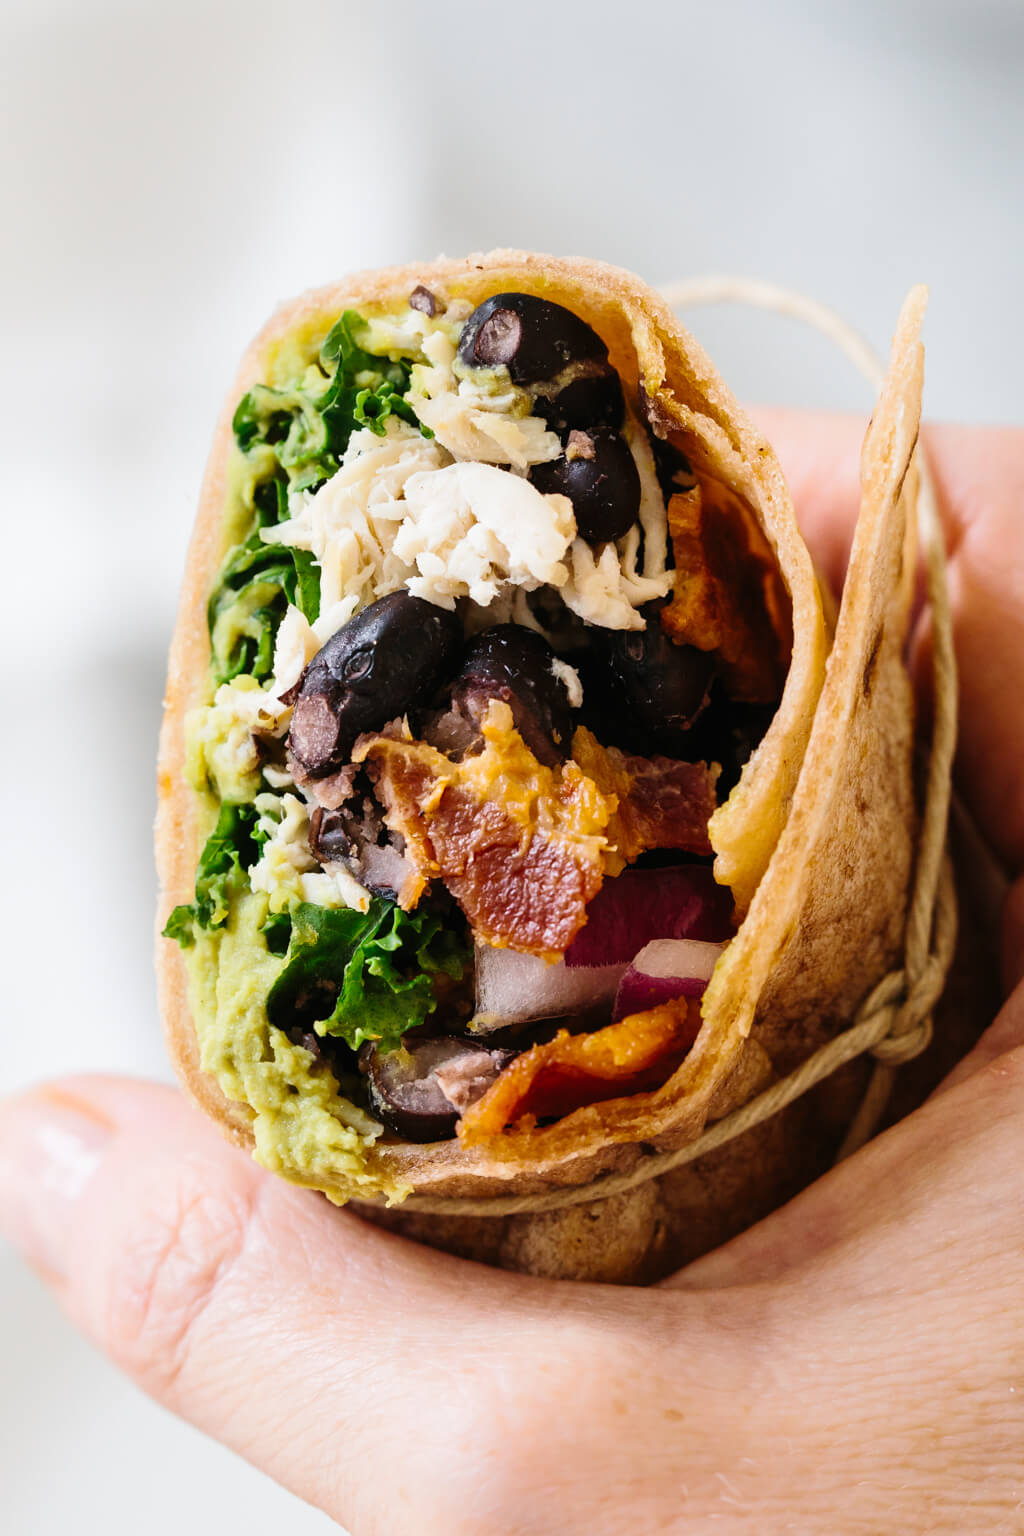 Chicken wrap cut in half and held in hand.